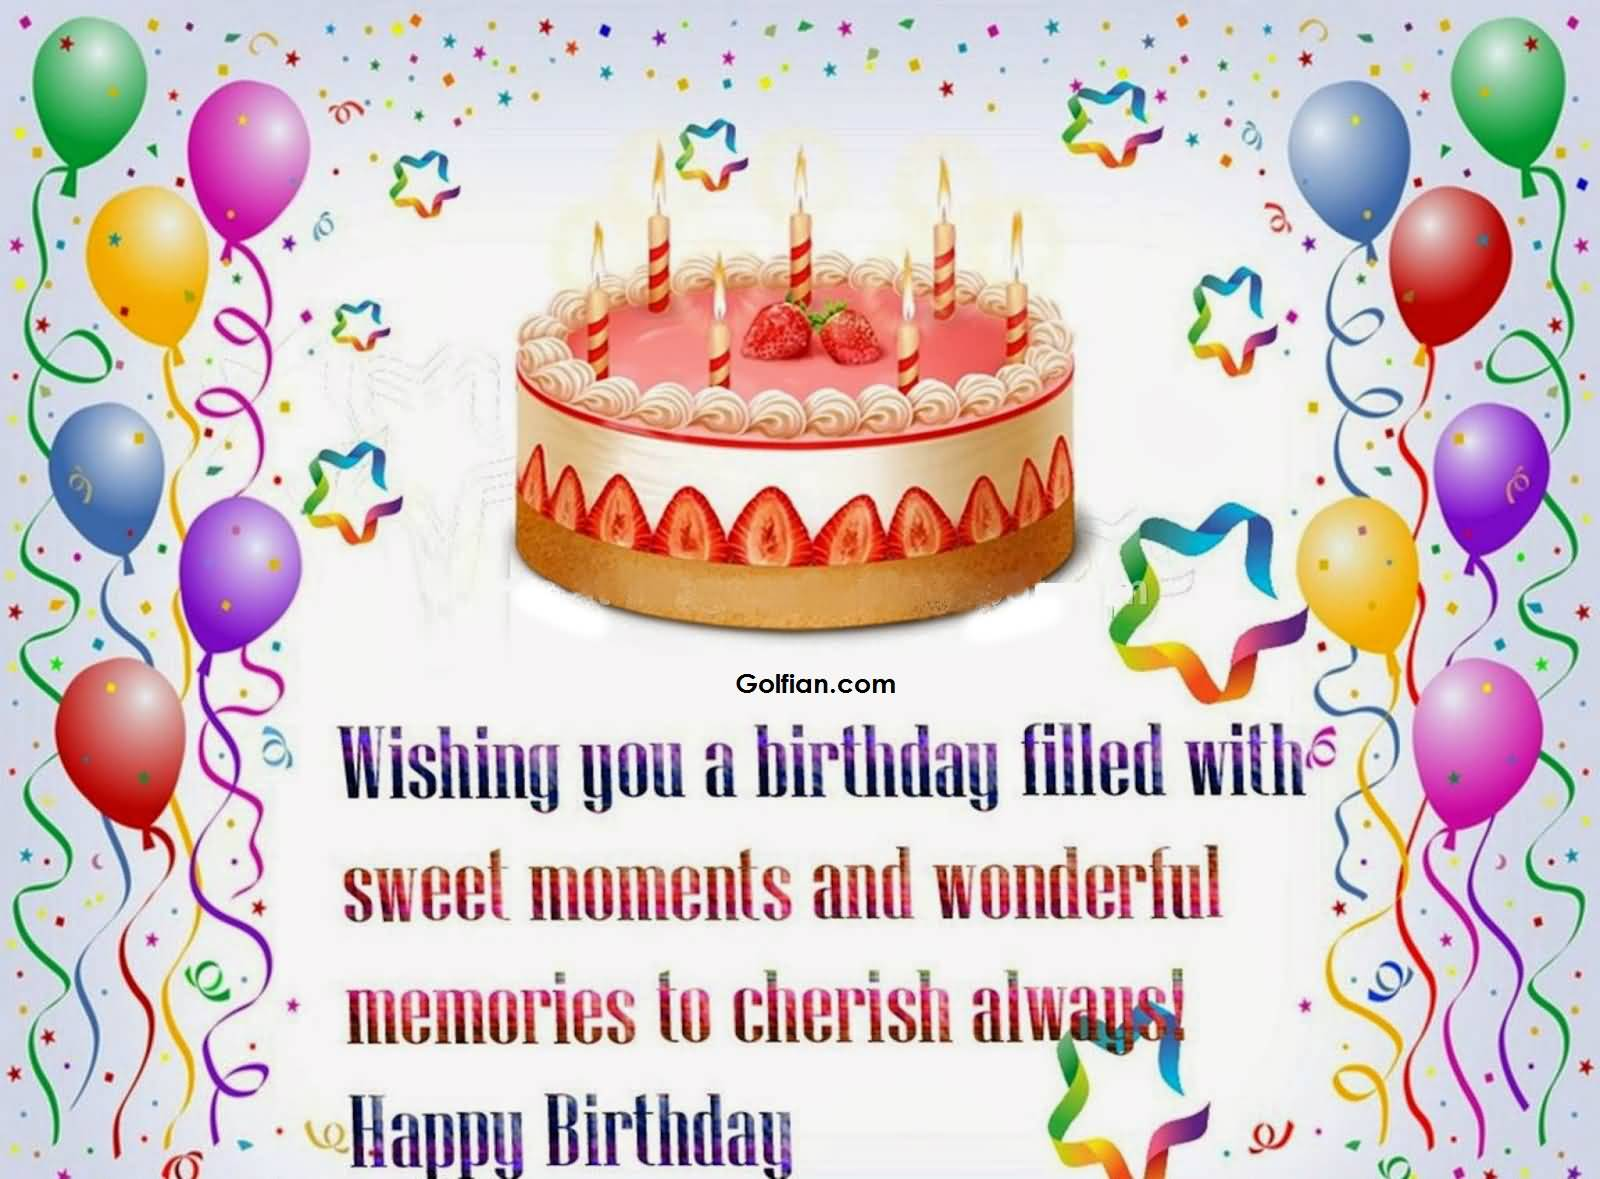 Sensational Happy Birthday Quotes 21 Parryz Com Funny Birthday Cards Online Inifofree Goldxyz